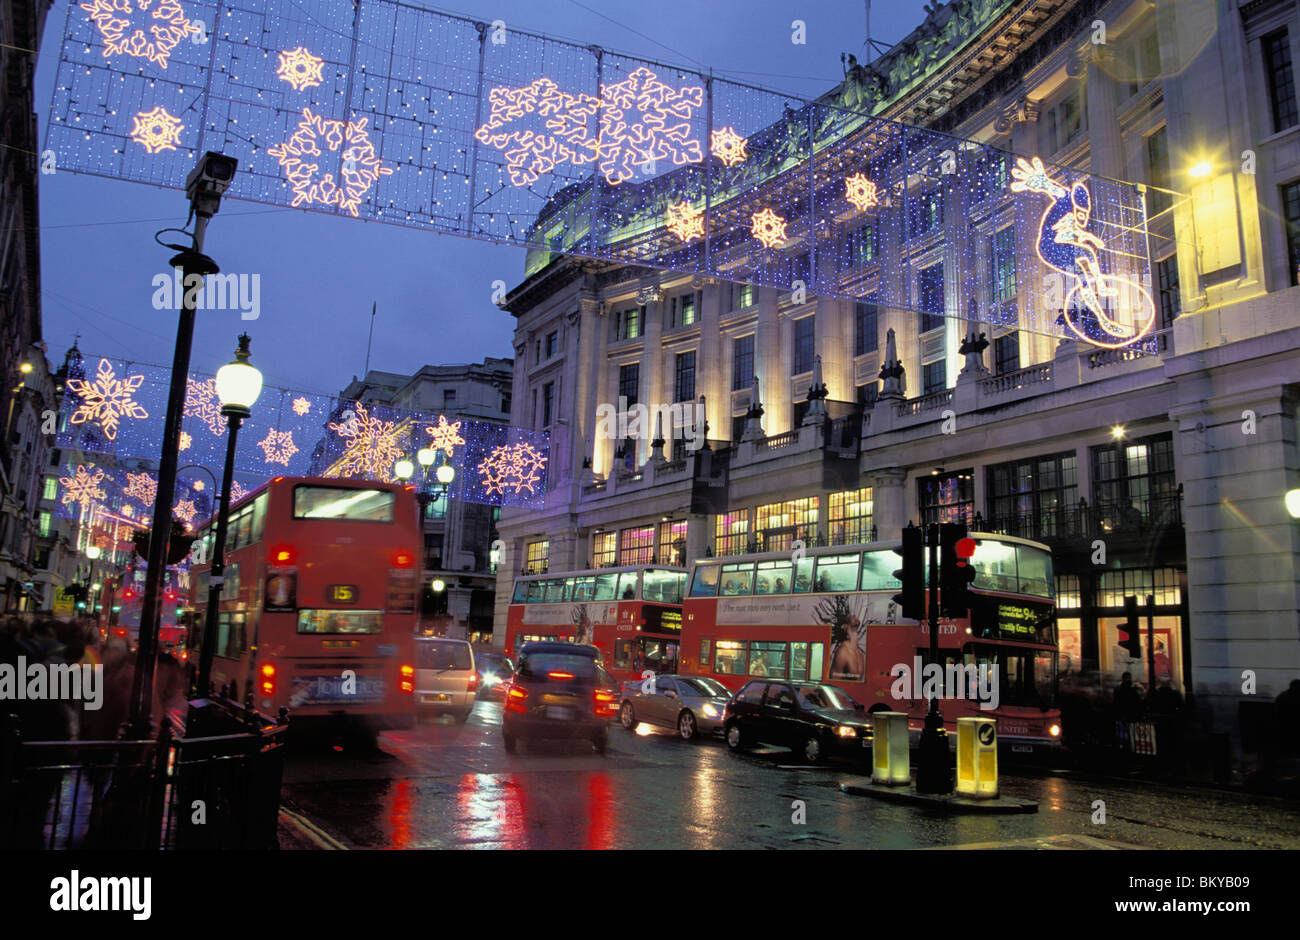 regent street in der weihnachtszeit london england stockfoto bild 29490169 alamy. Black Bedroom Furniture Sets. Home Design Ideas